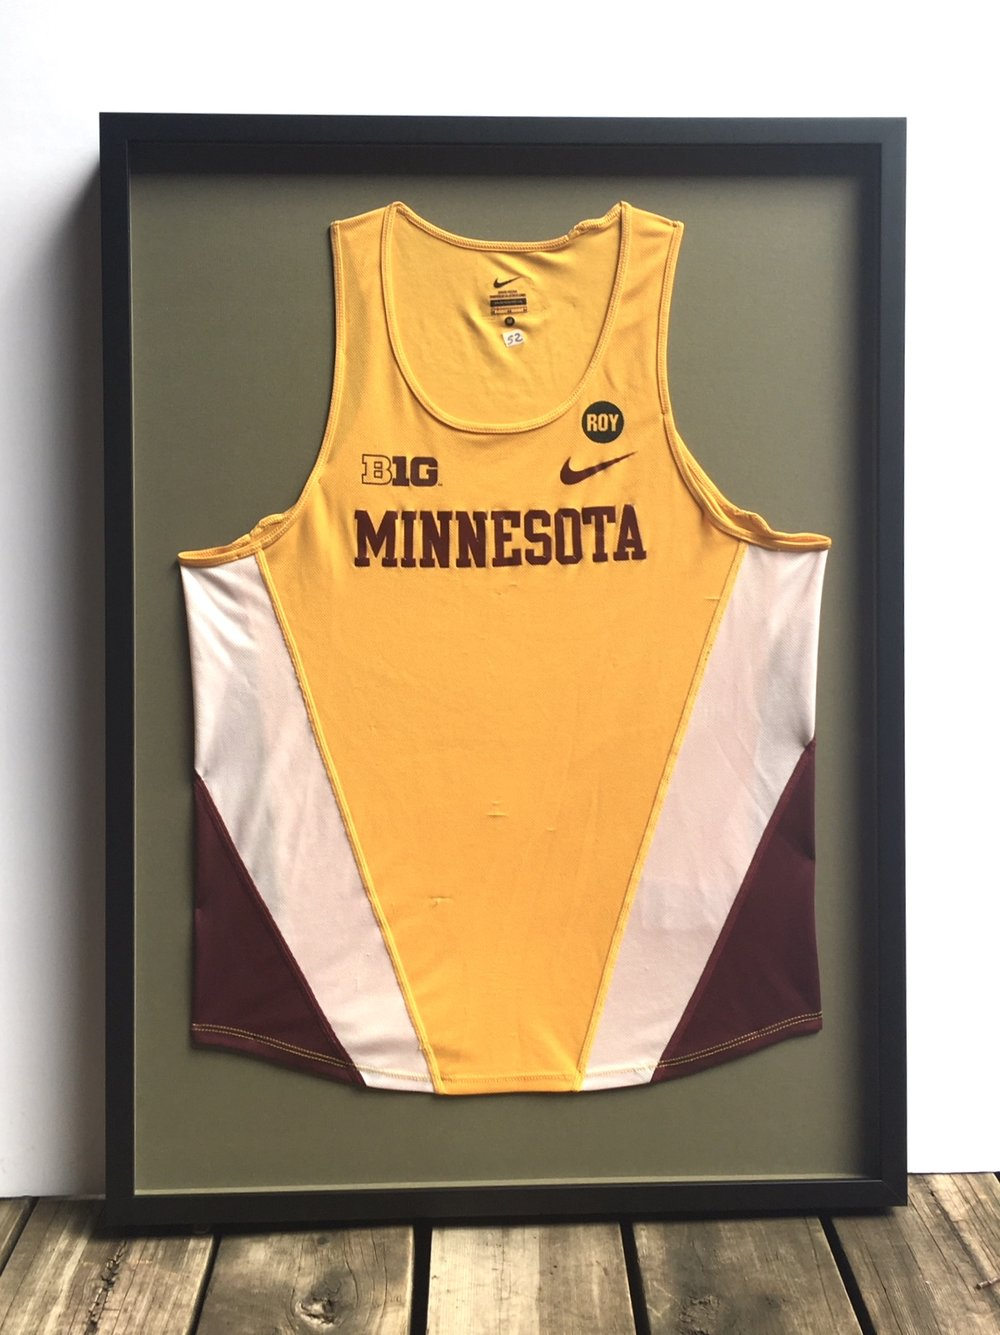 University of MInnesota Track Jersey shadow boxed in black.